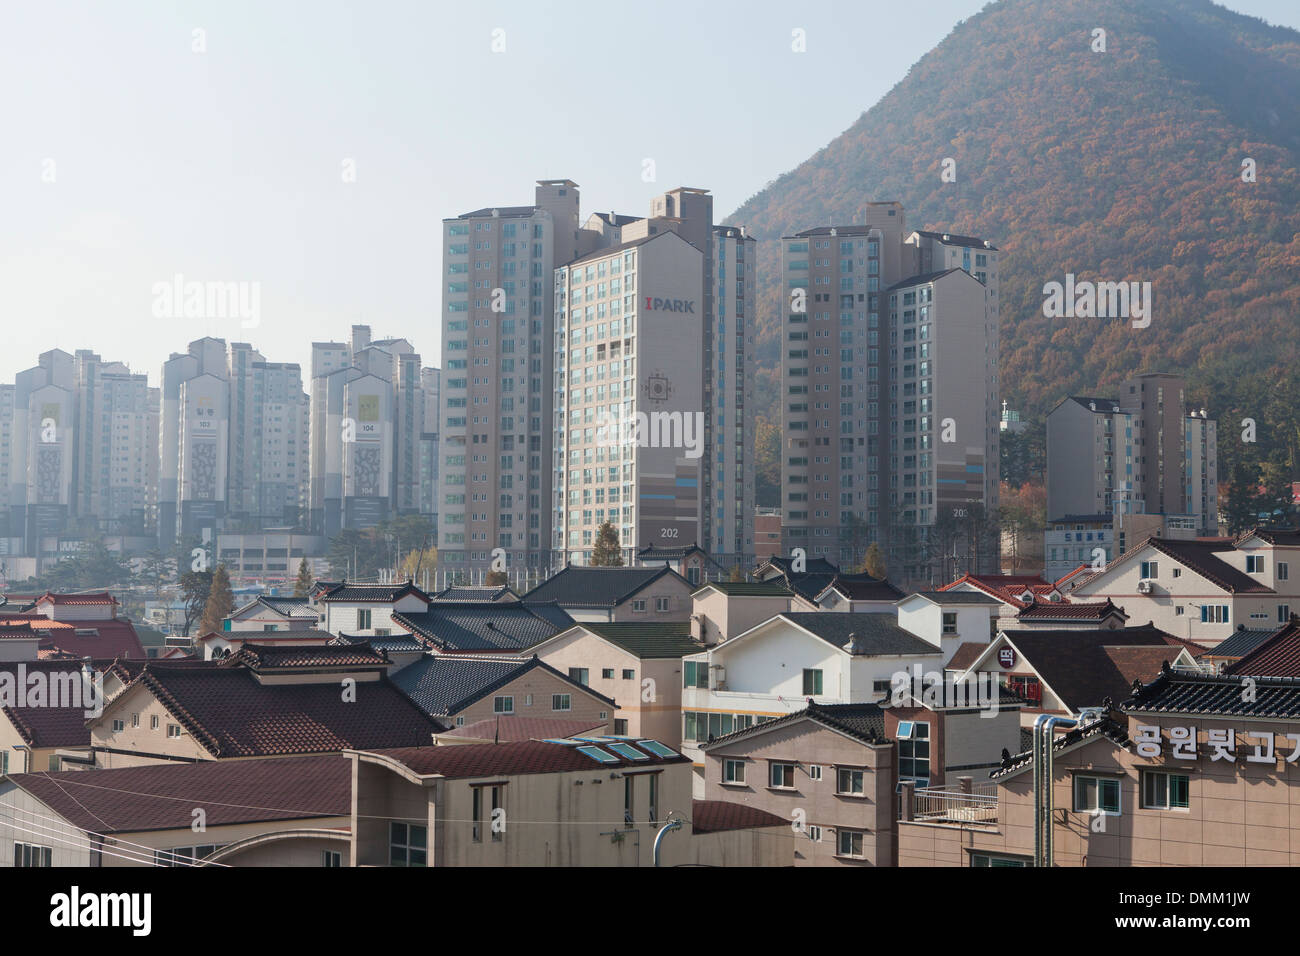 New high-rise multi-complex housing among traditional single-family houses - Gimhae, South Korea - Stock Image